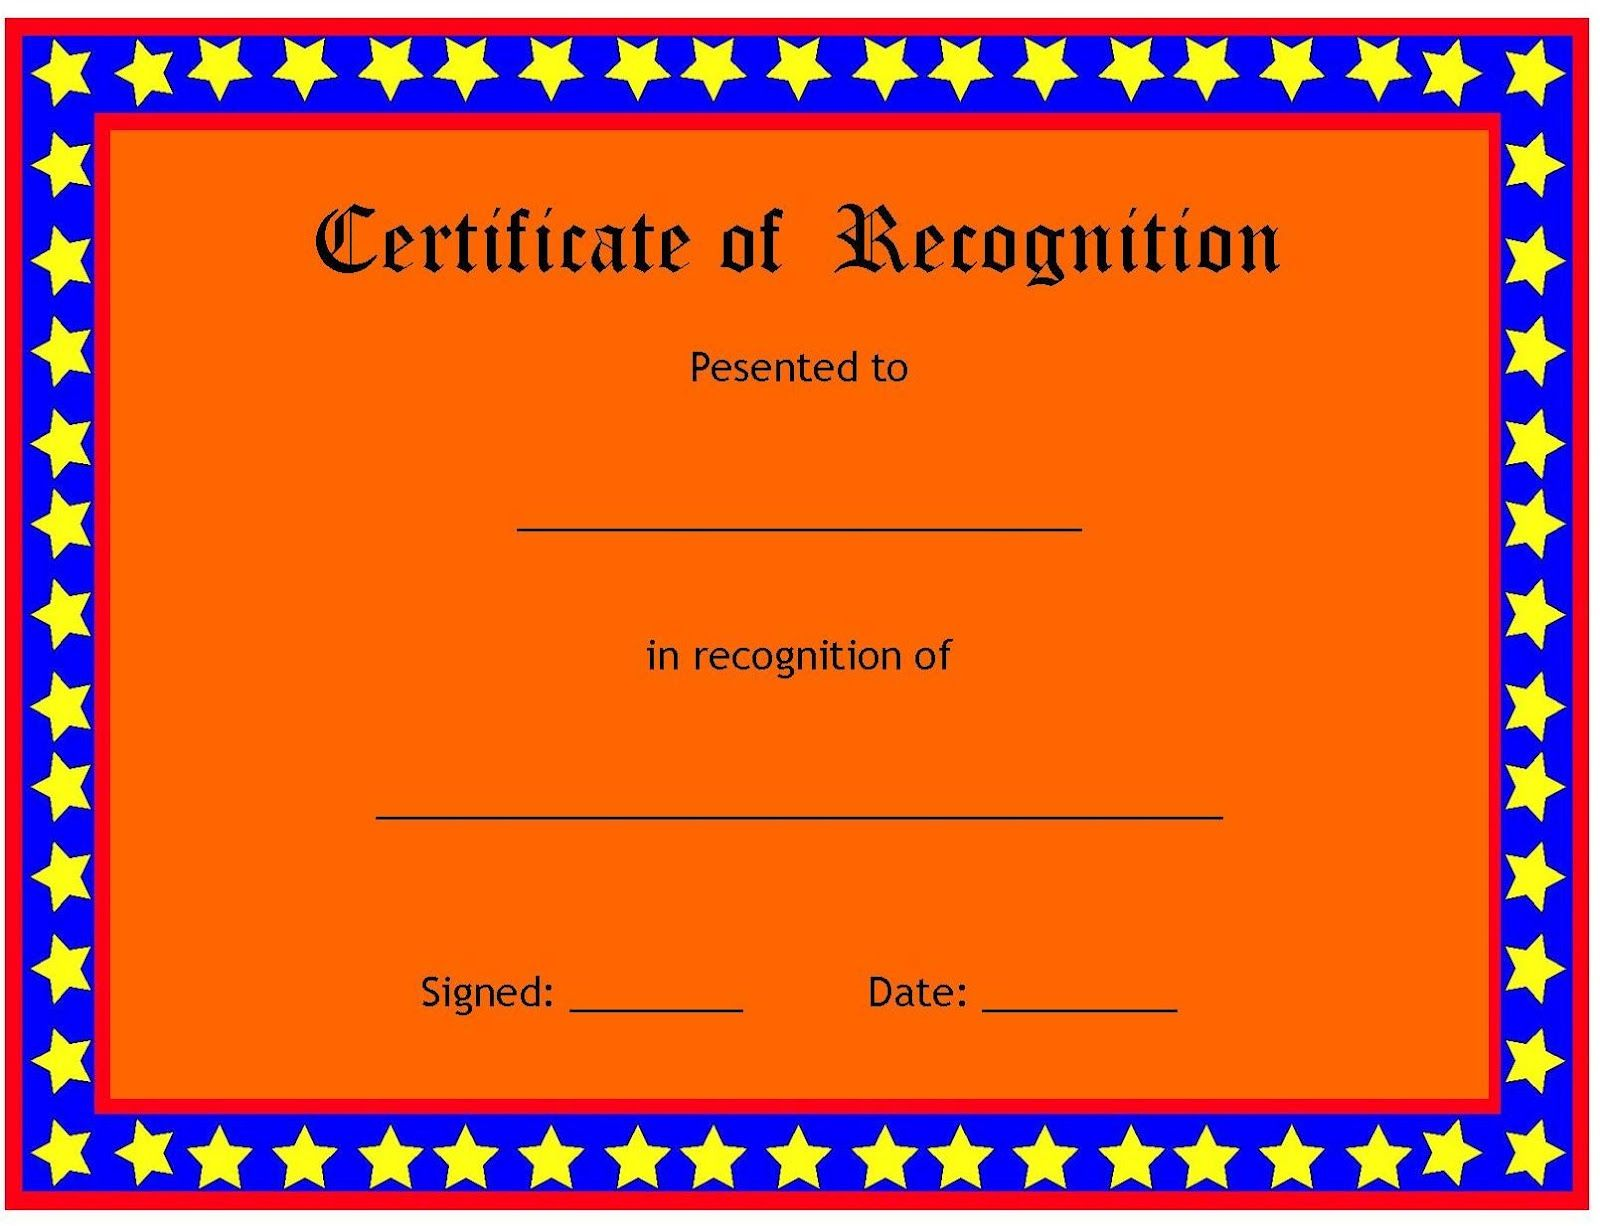 certificate of appreciation templates certificate templates shining mom a collection of certificate borders and templates